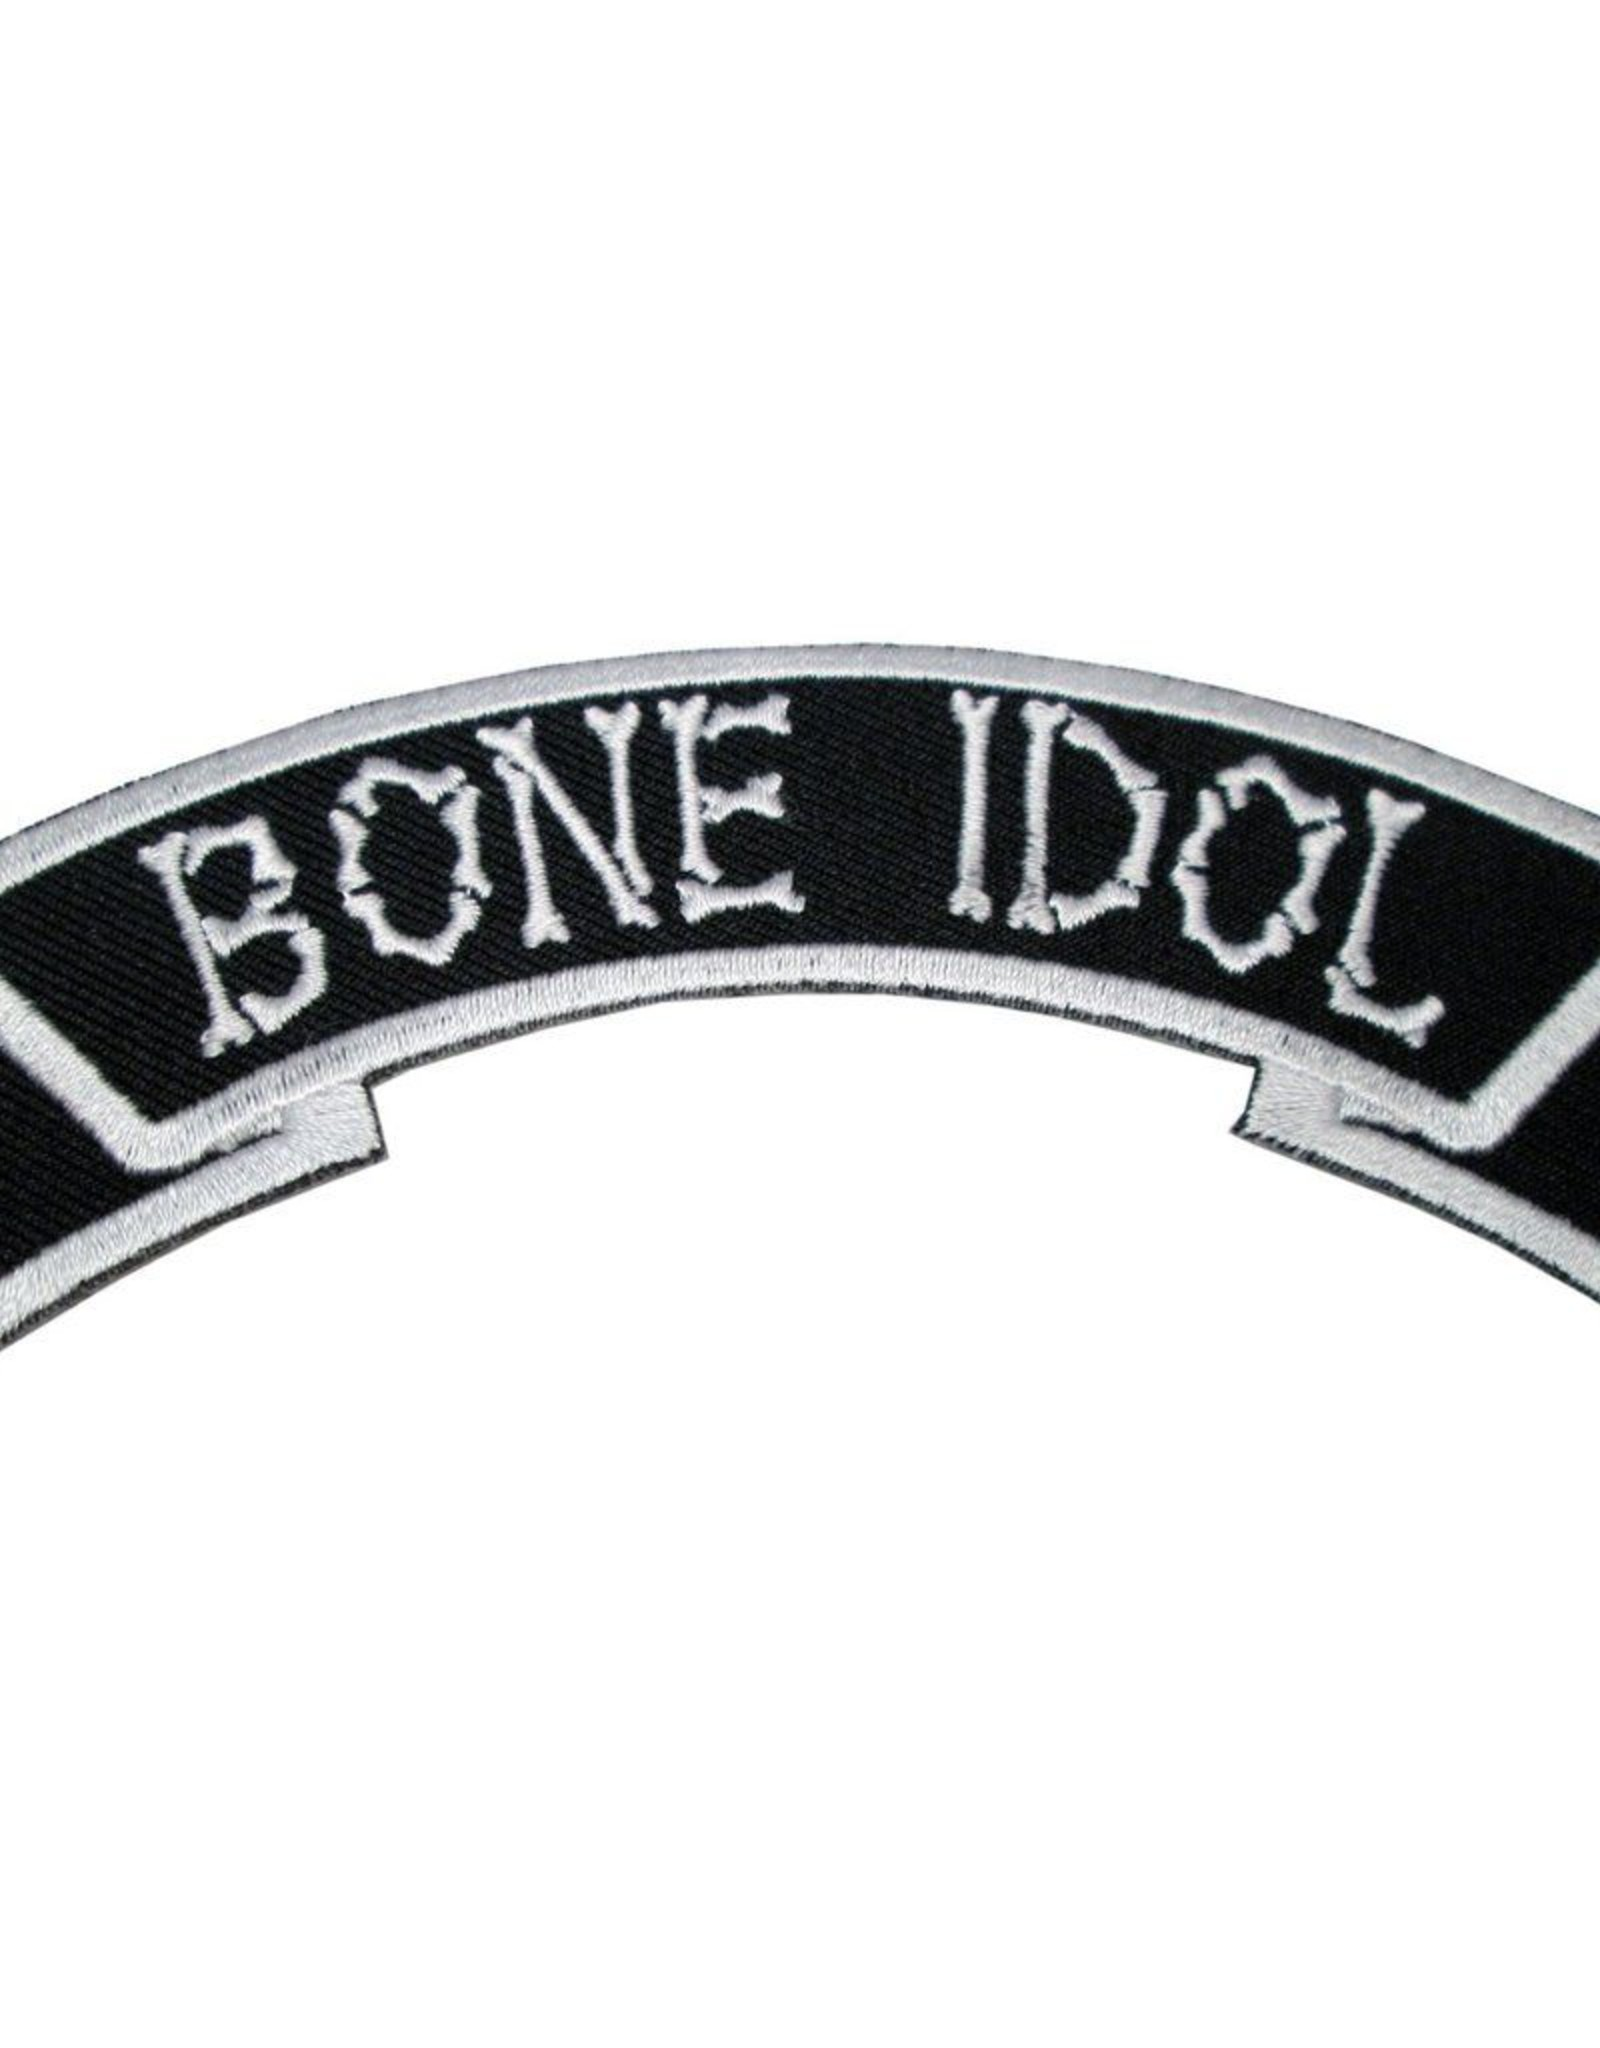 Arch Bone Idol Patch